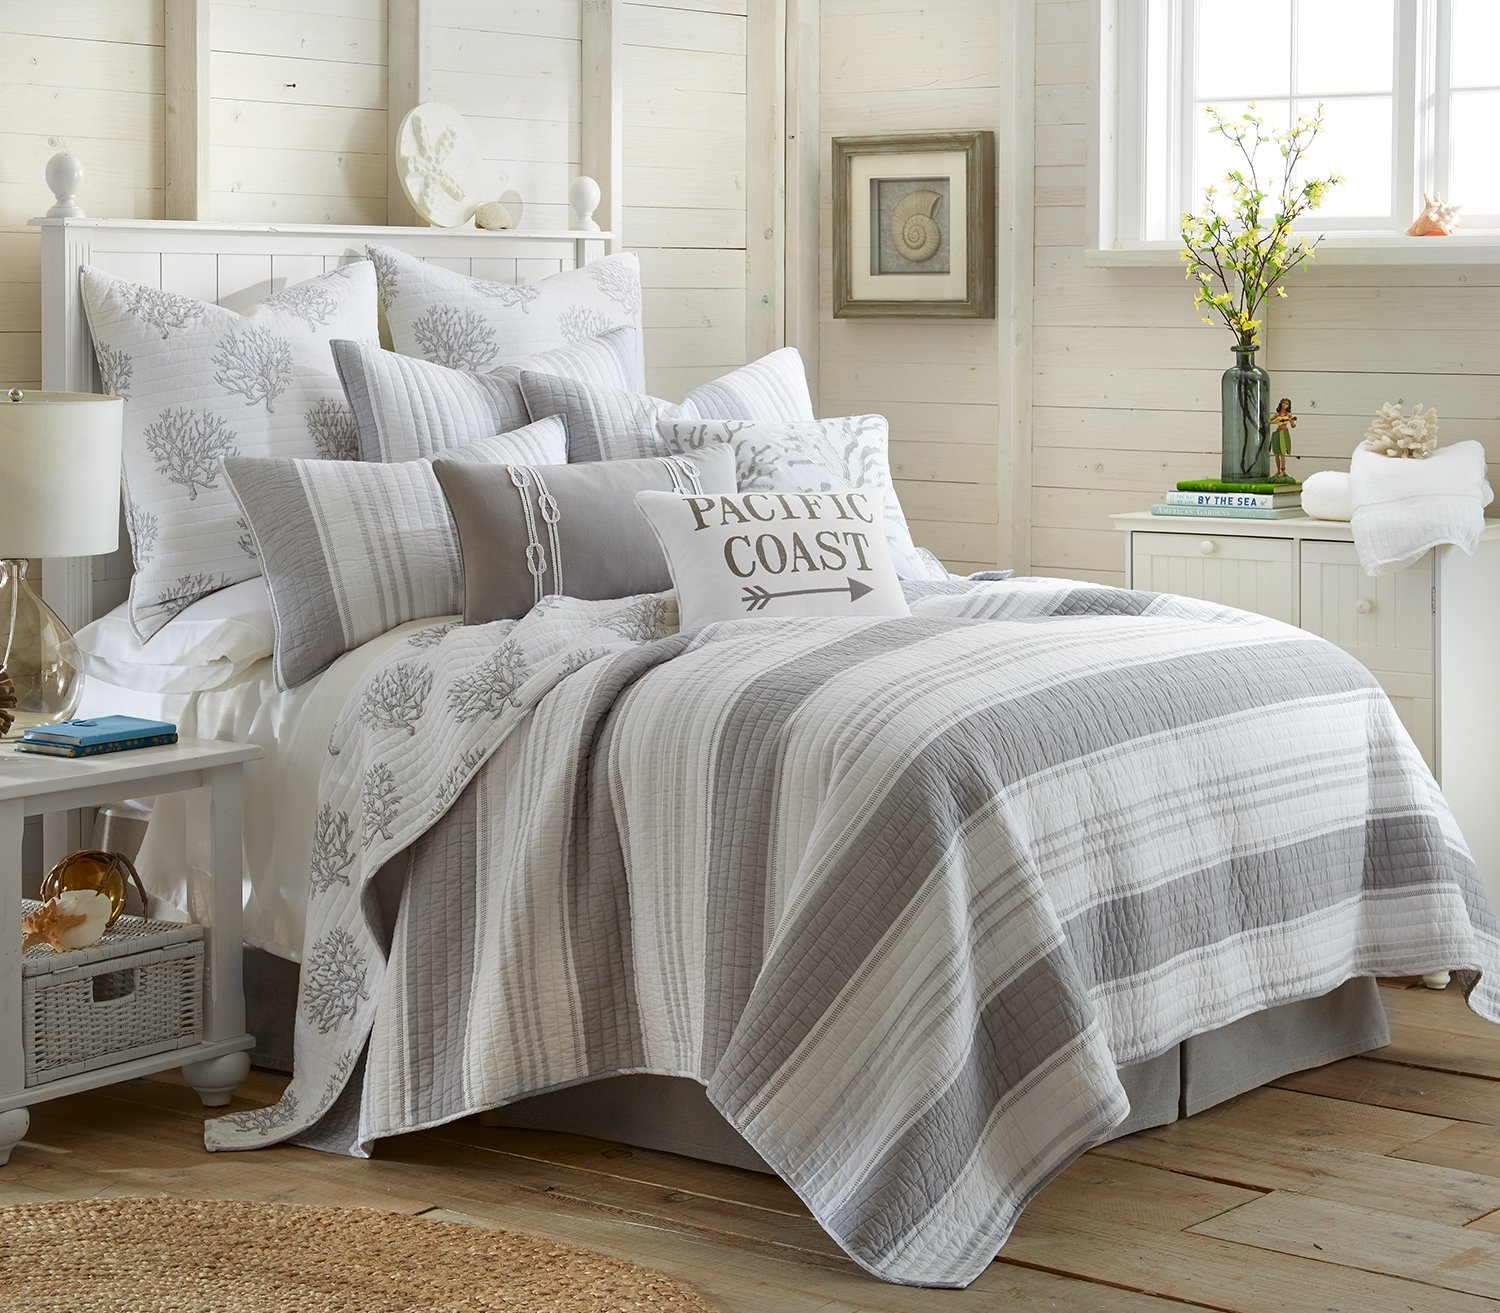 Nantucket Full/Queen Cotton Quilt Set Stripe Coastal